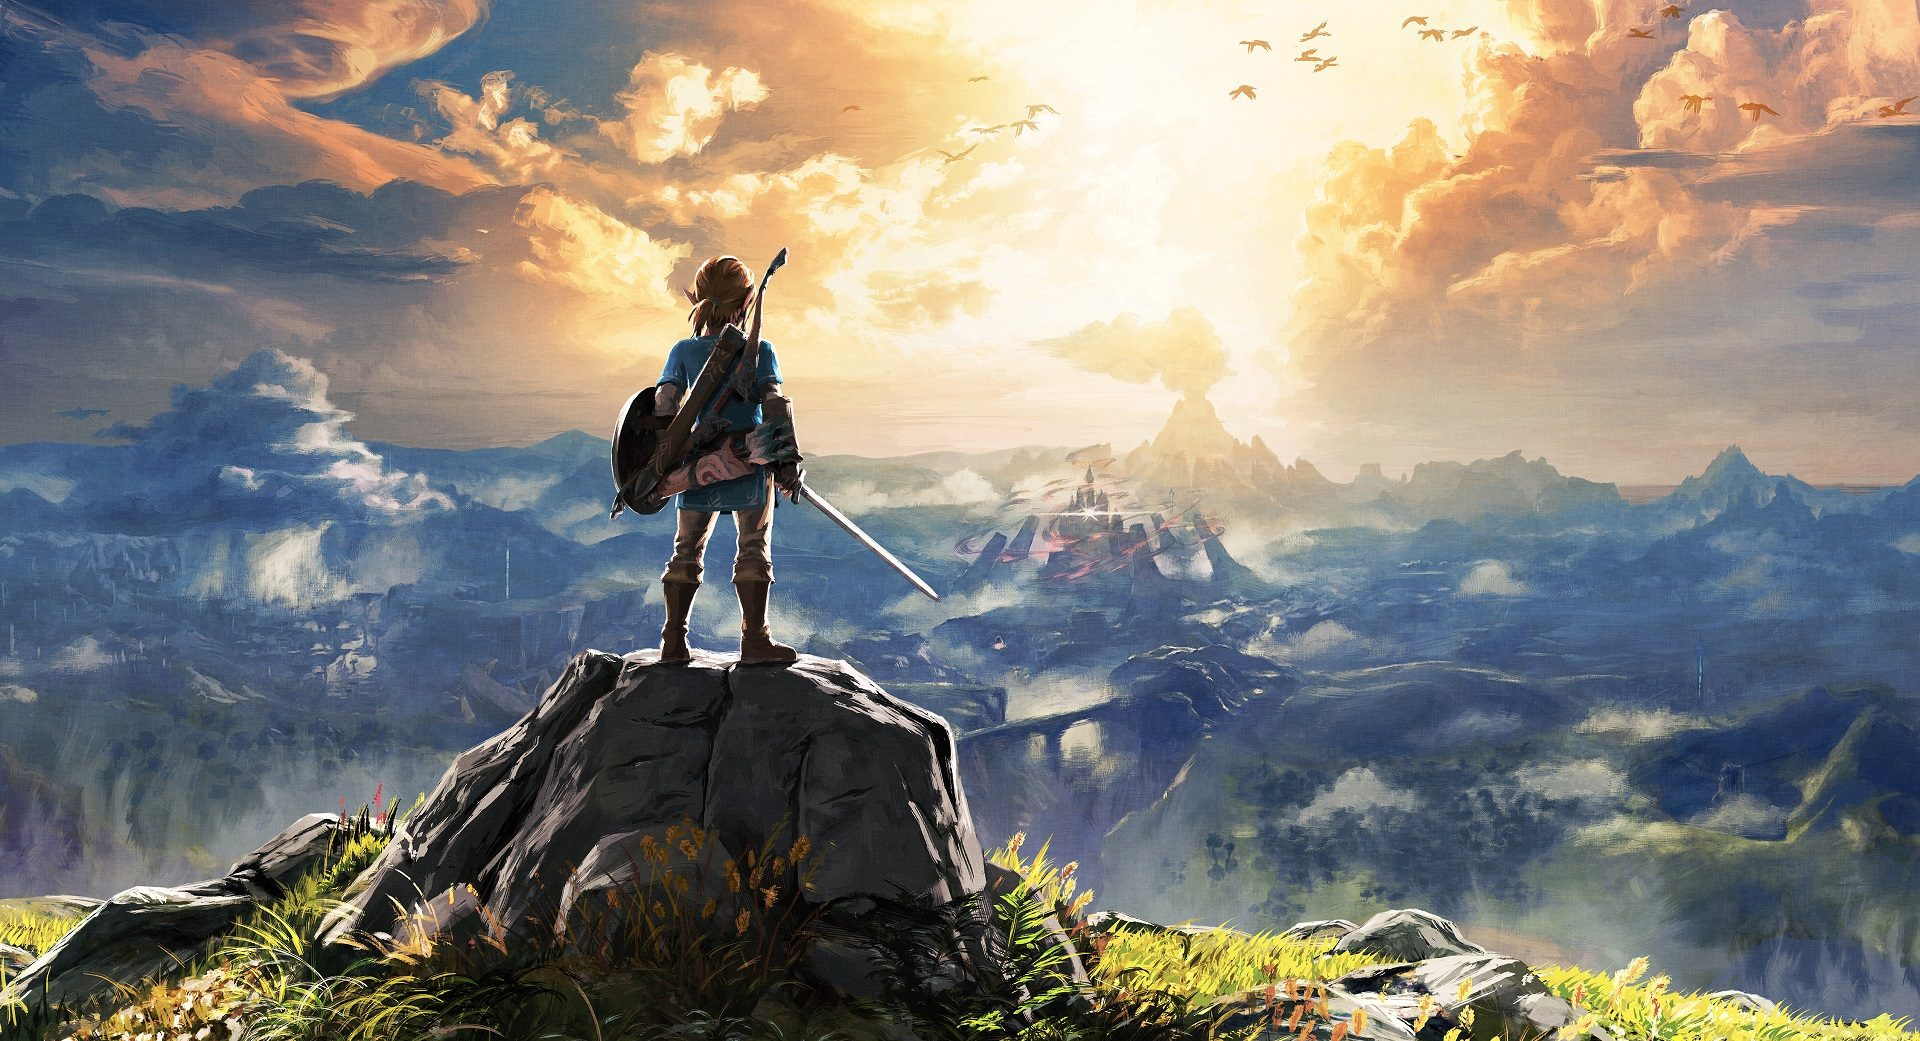 Resultado de imagen para the legend of zelda breath of the wild